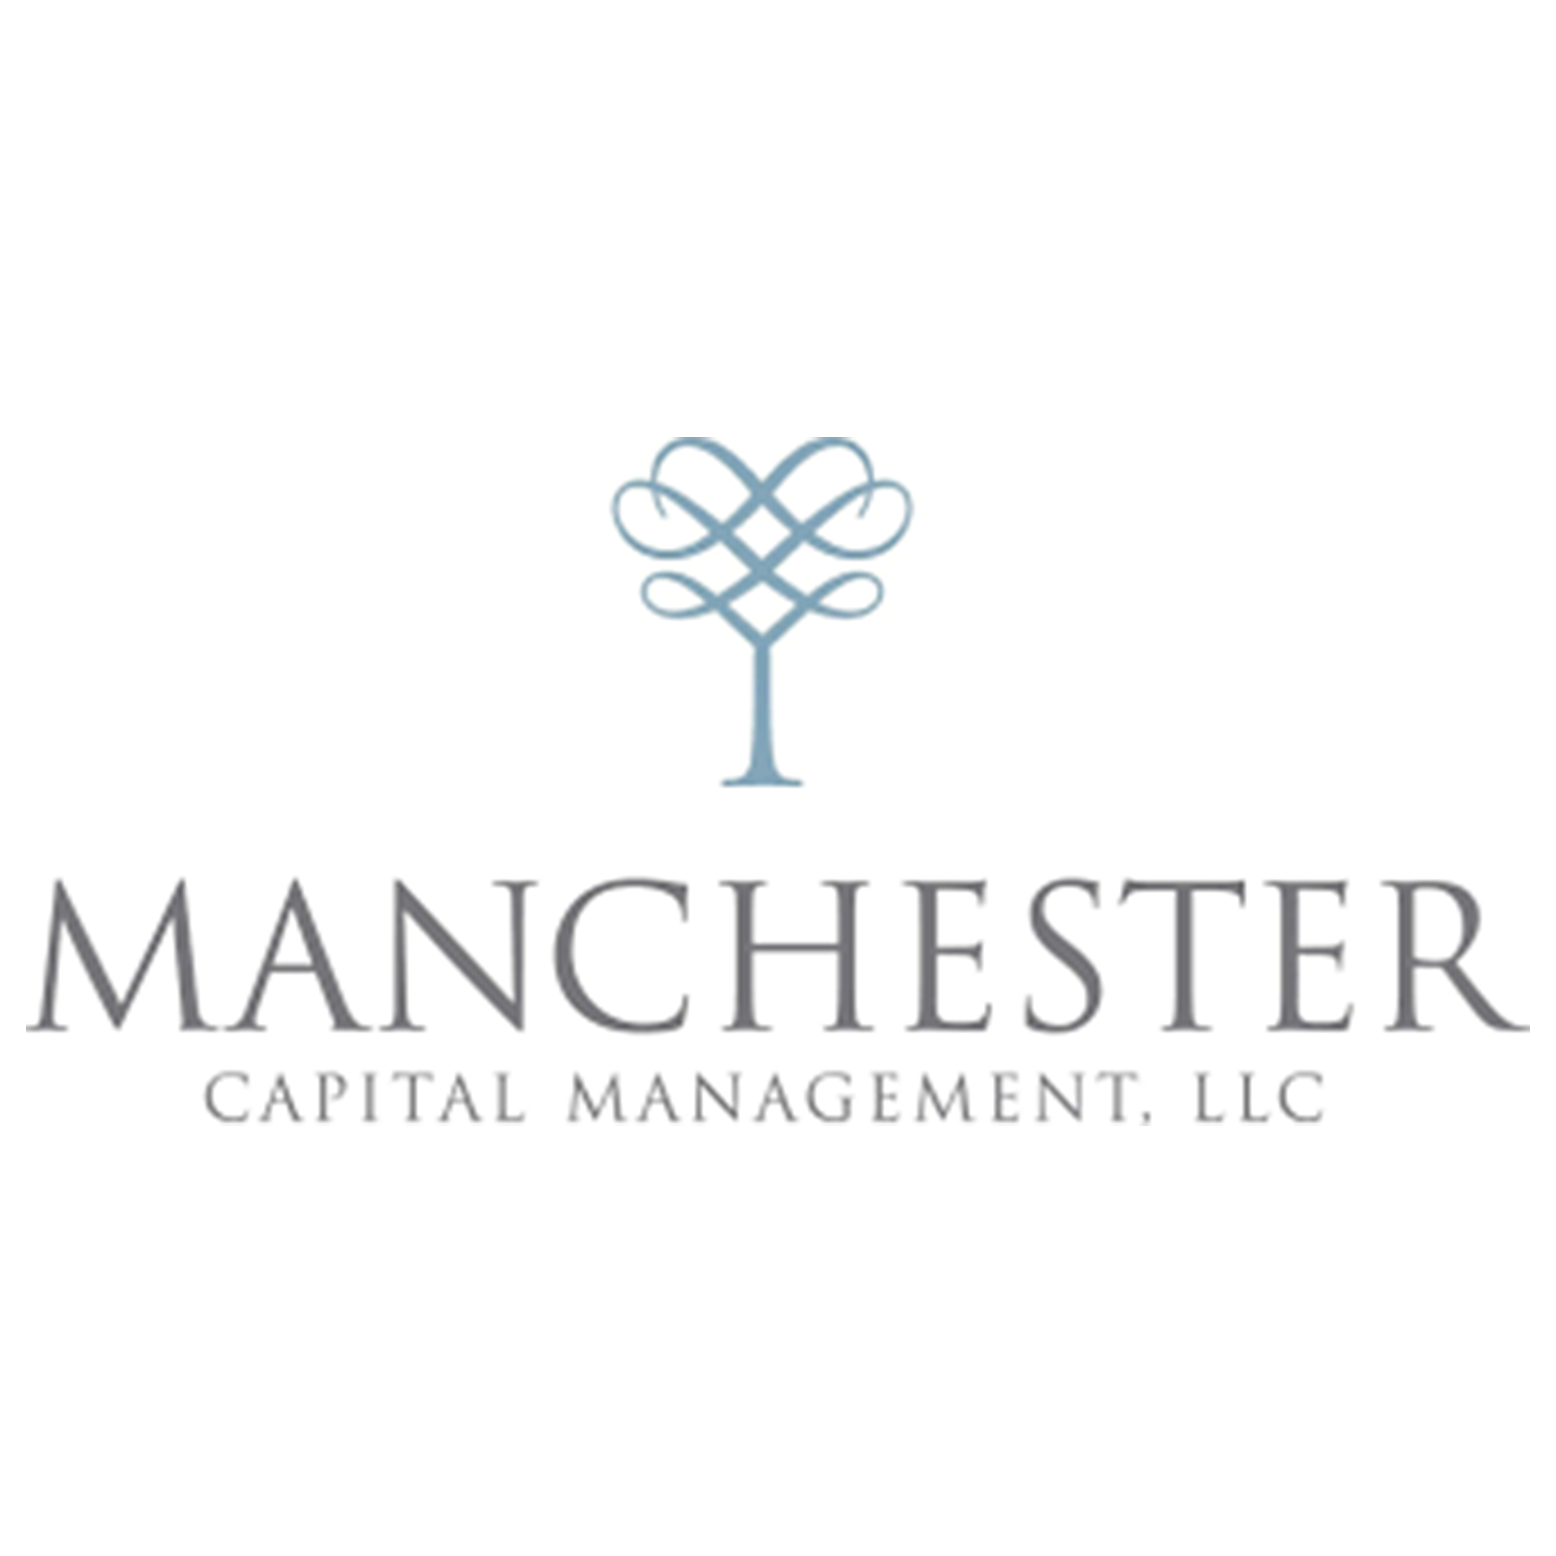 Manchester Capital Management